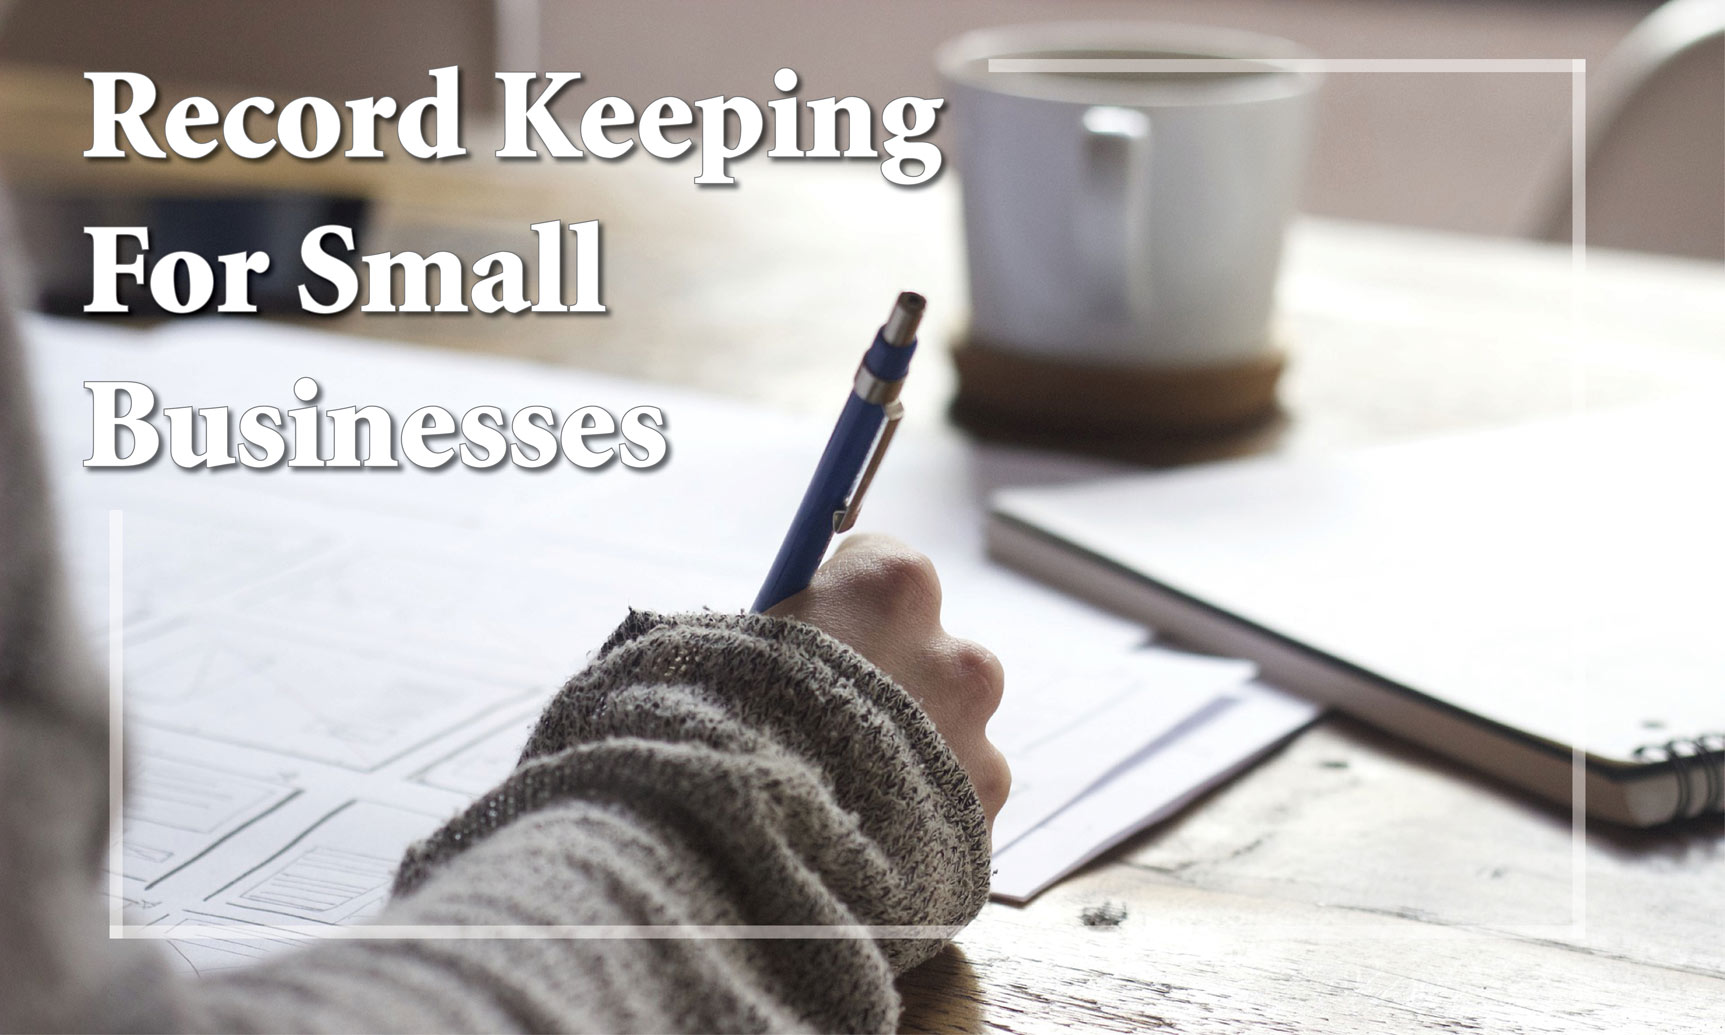 Taking Care of Business: Record Keeping for Small Businesses